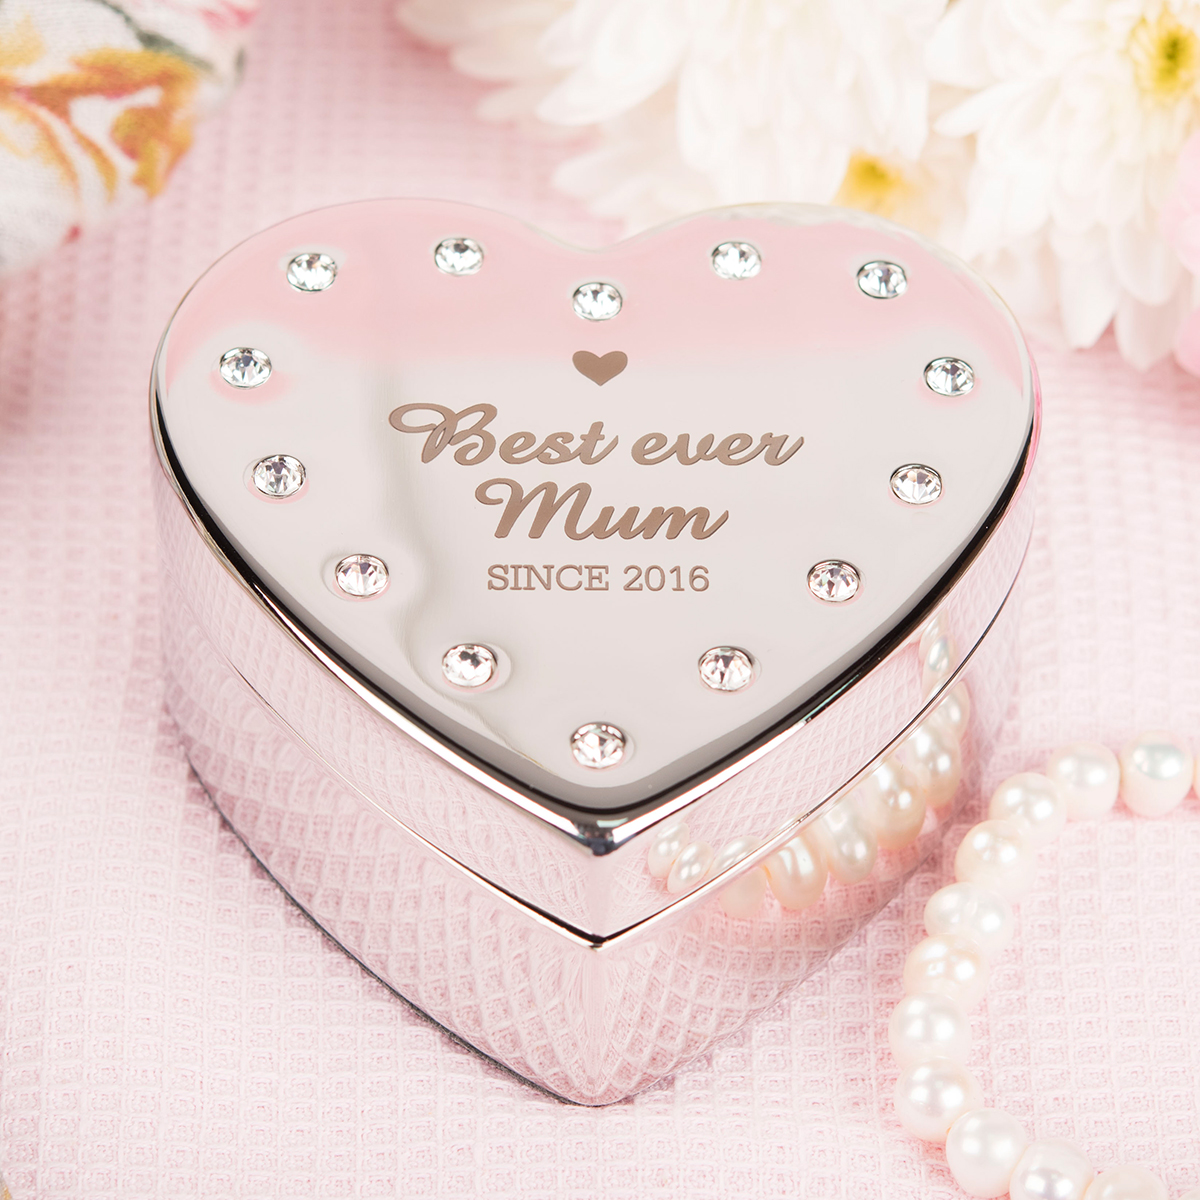 Bargain Engraved Diamanté Heart-Shaped Jewellery Box - Best Ever Mum Stockists